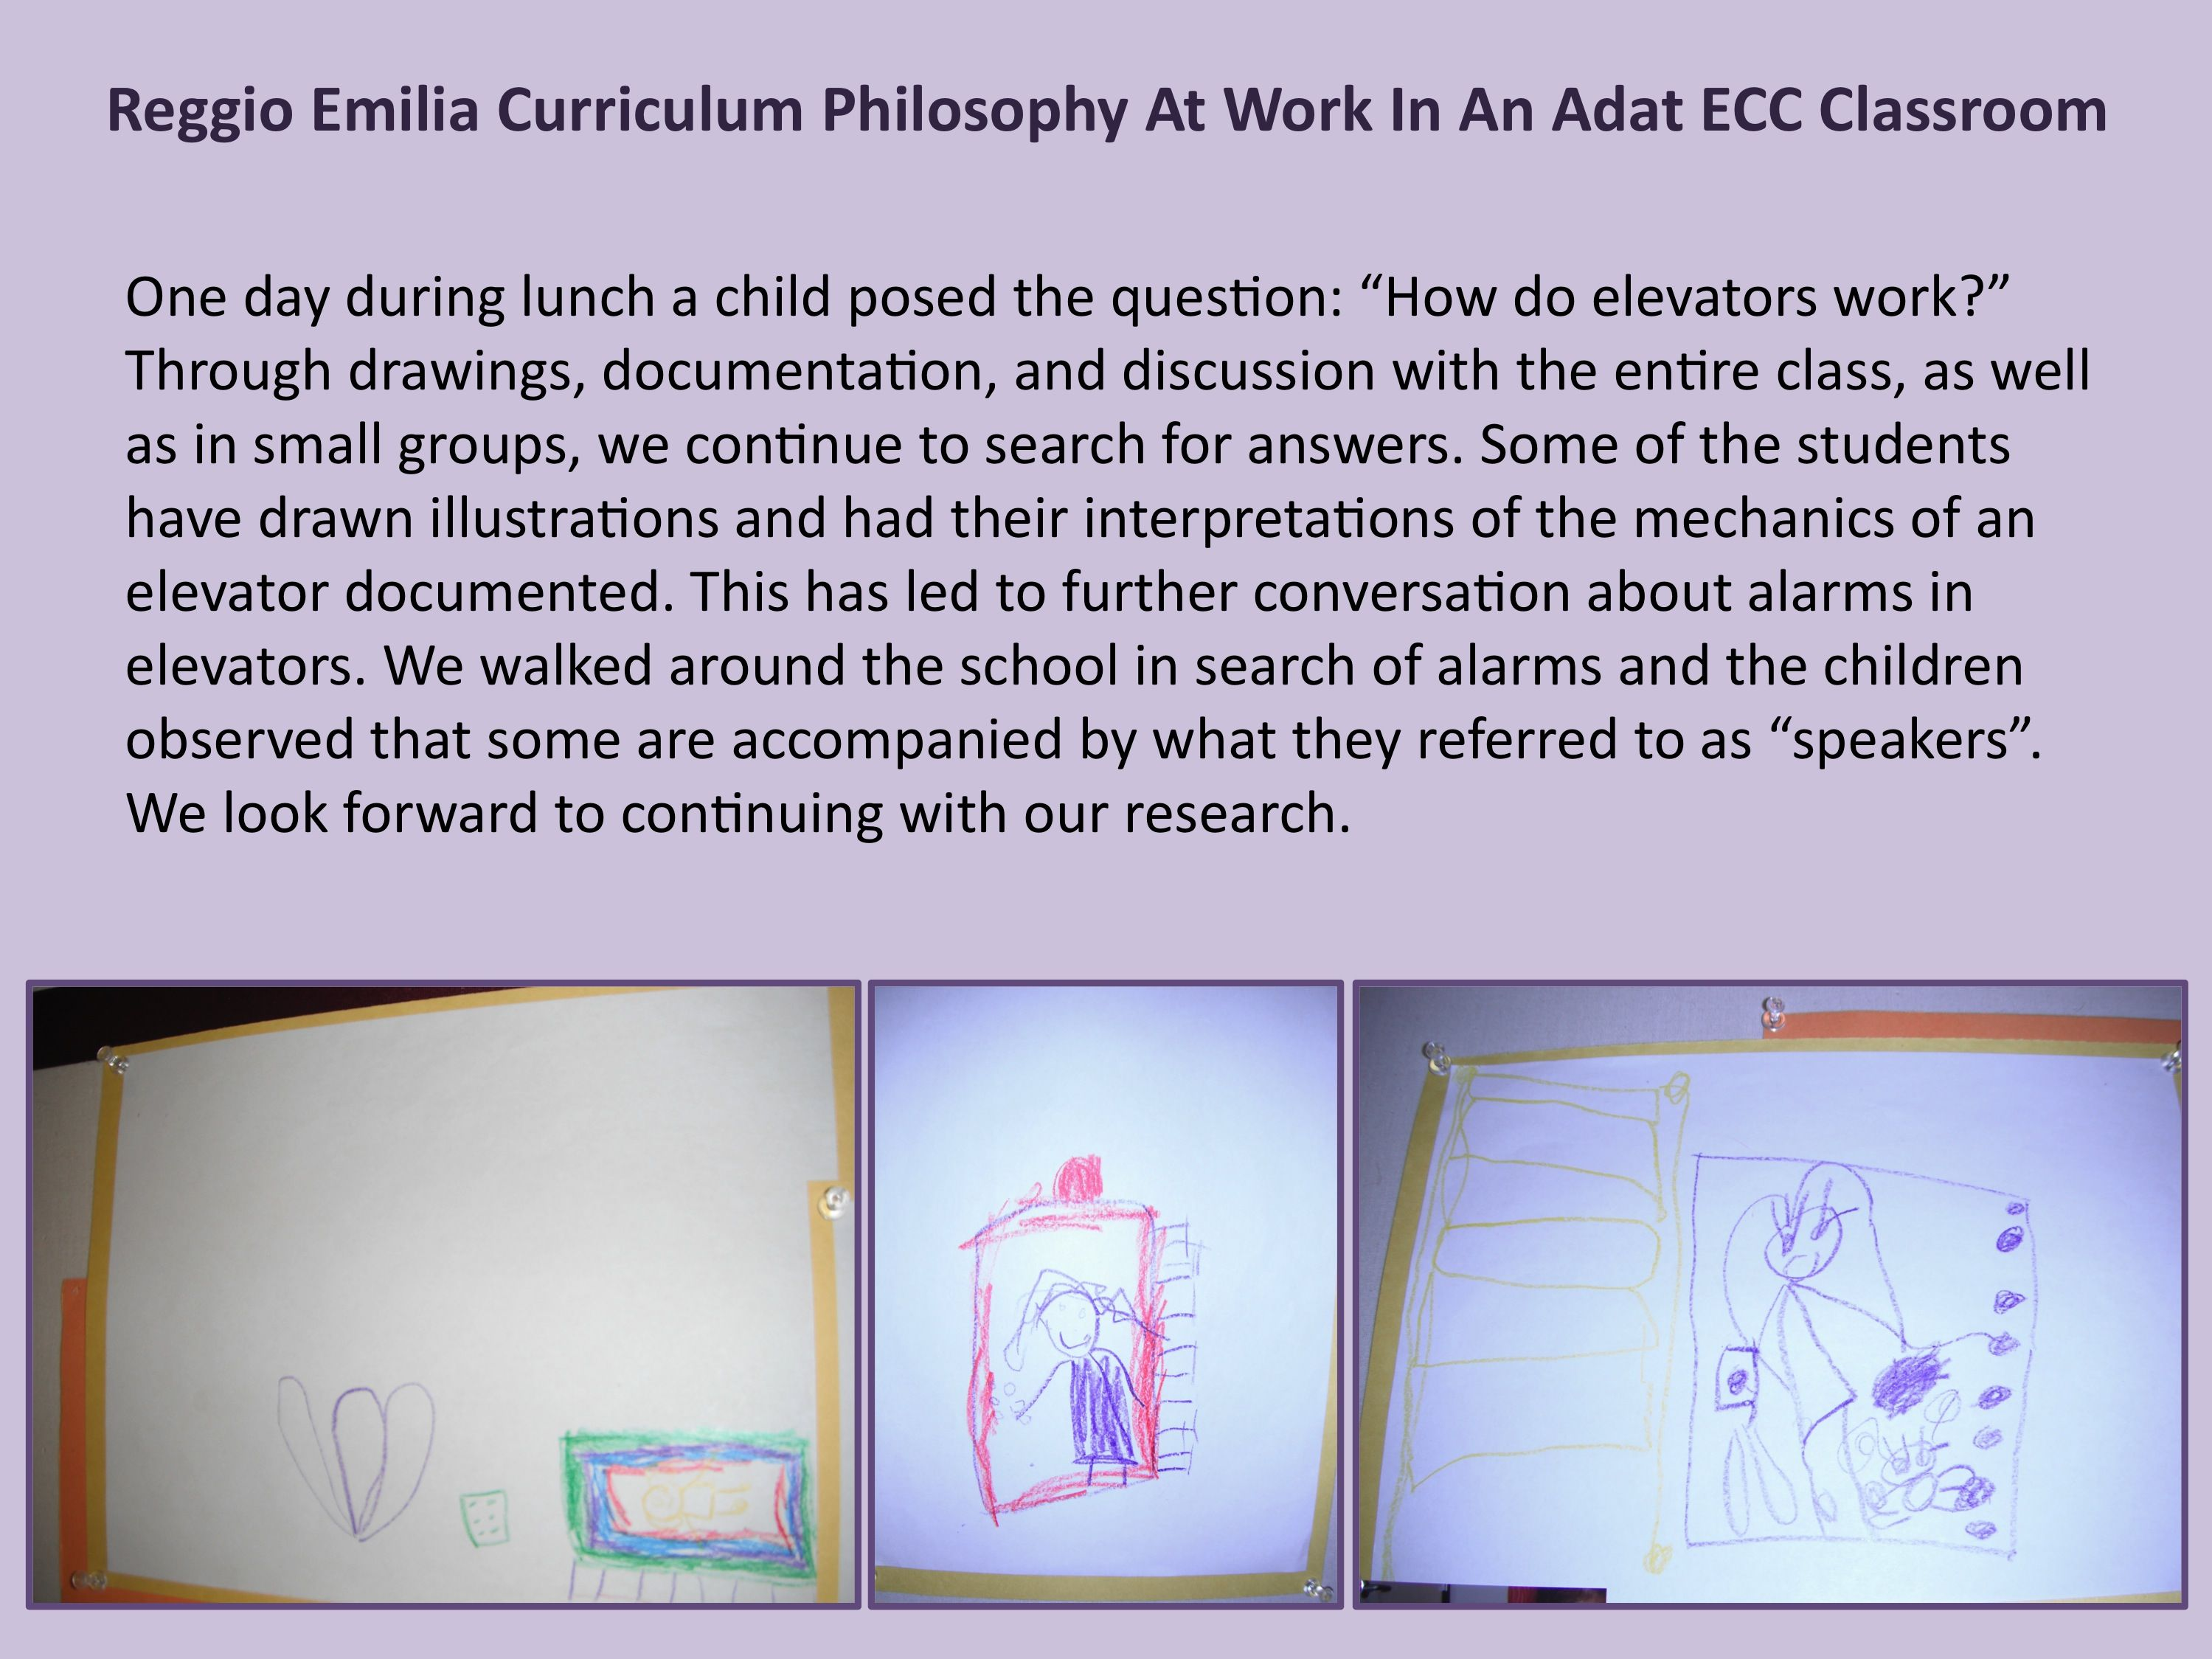 this is an example of many reggio emilia curriculum philosophies this is an example of many reggio emilia curriculum philosophies emergent curriculum guided